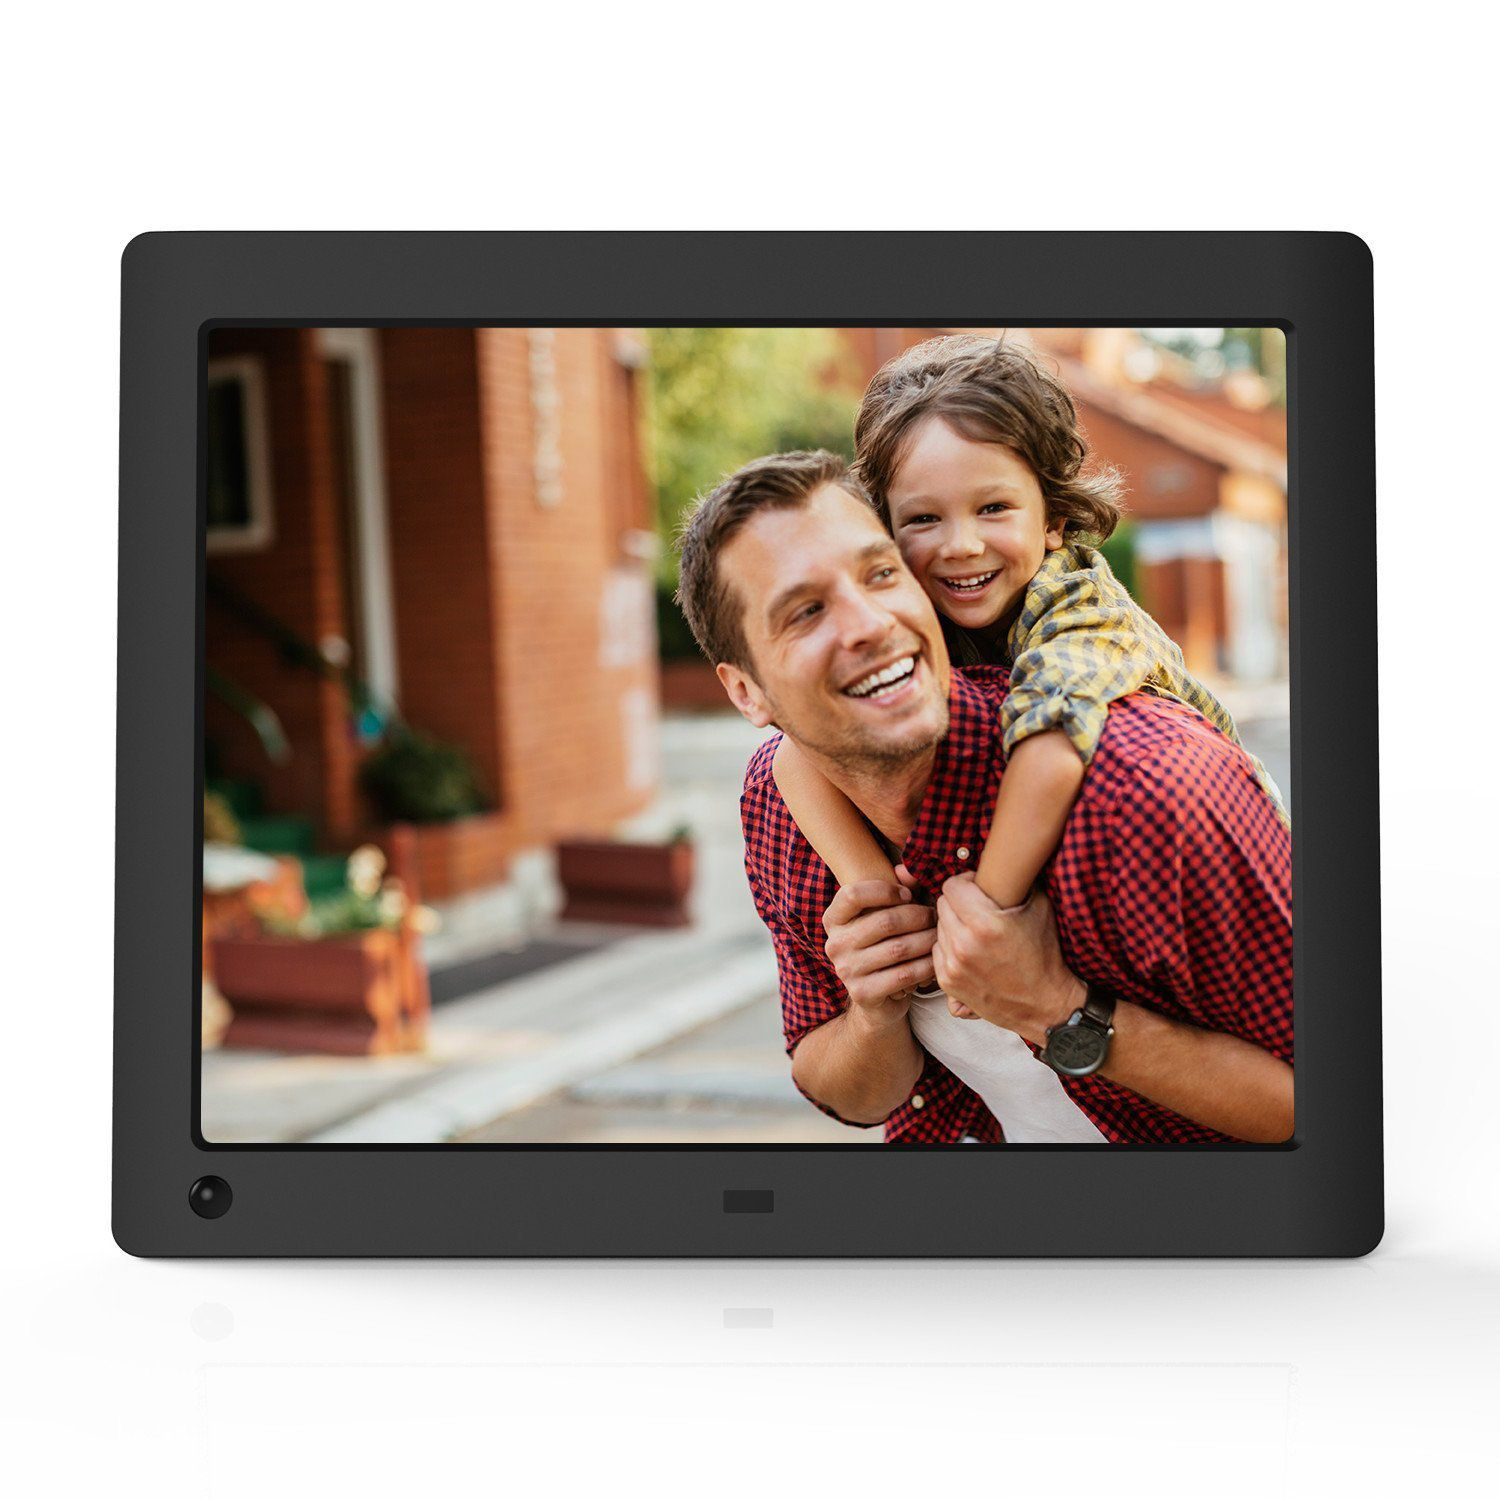 9 best digital photo frames of 2018 electronic picture frames in 9 best digital photo frames of 2018 electronic picture frames in every size jeuxipadfo Gallery